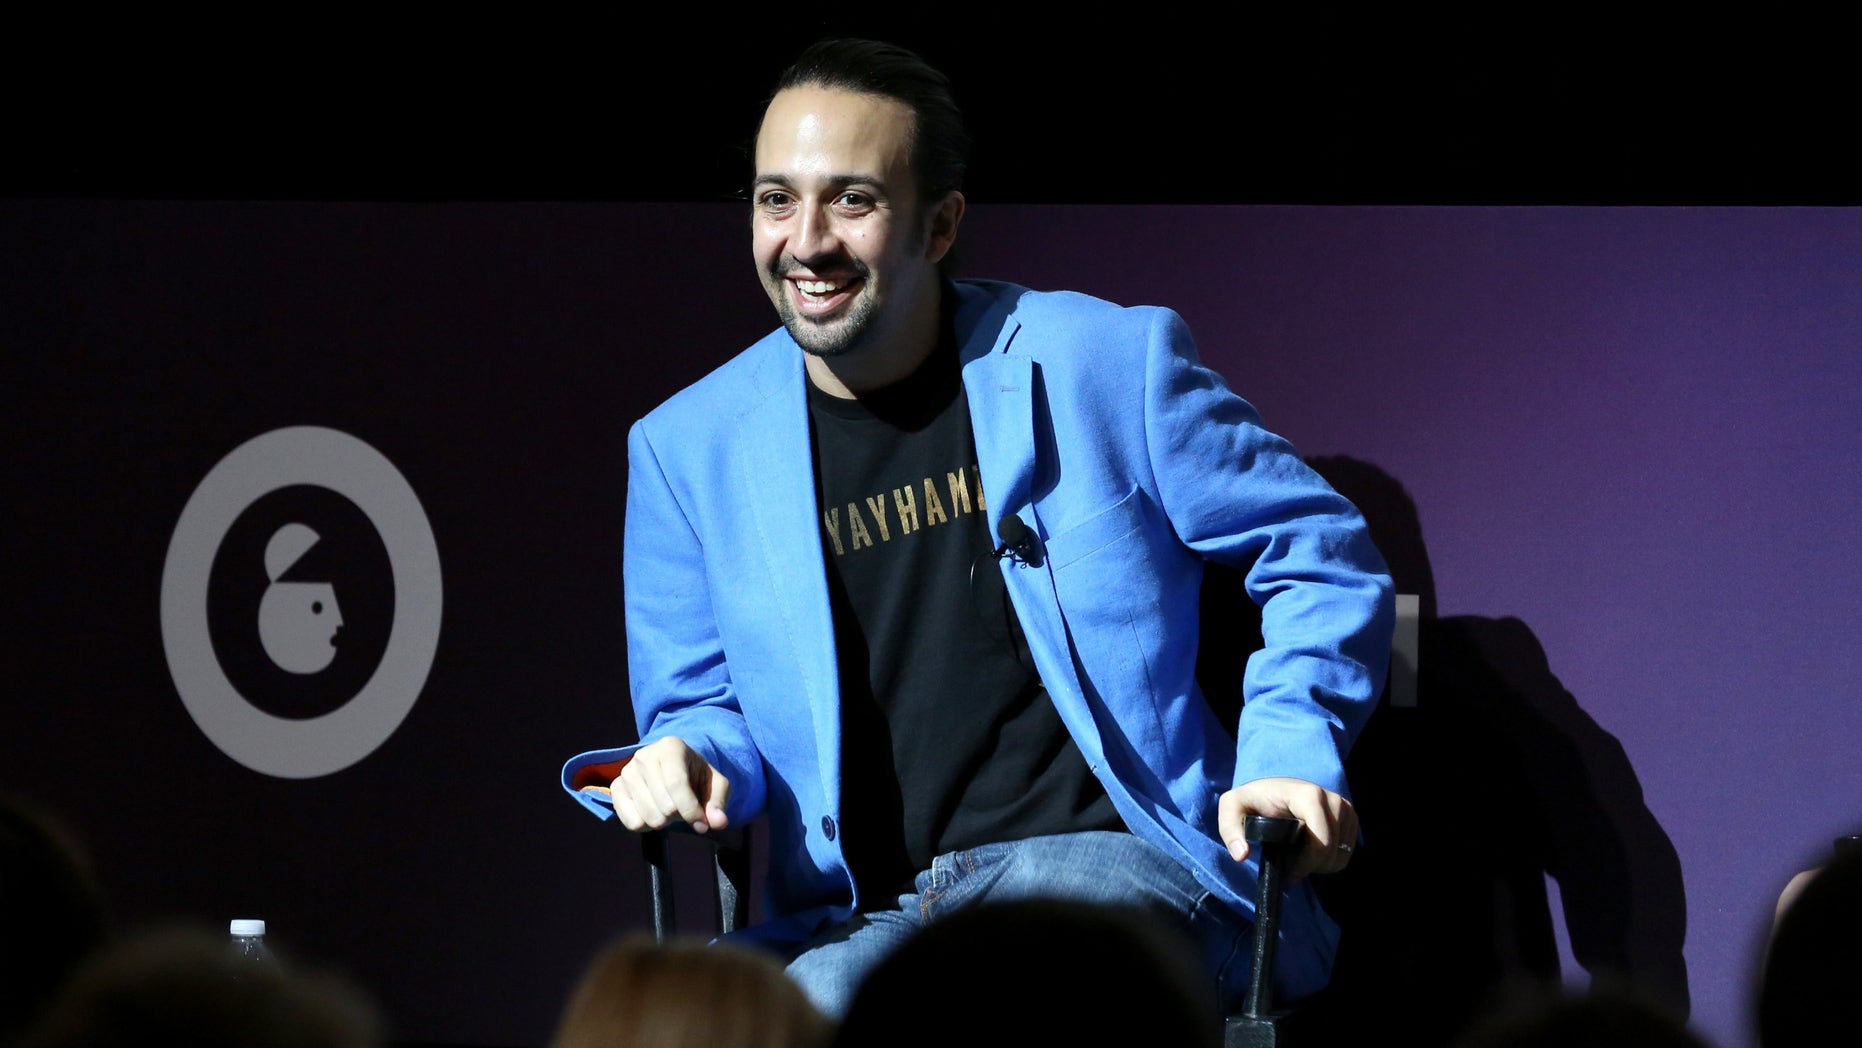 NEW YORK, NY - SEPTEMBER 29:  Tony, Grammy and Emmy award winning American actor and composer Lin-Manuel Miranda speaks onstage at the Lin-Manuel Miranda Live panel during Advertising Week 2015 AWXII at the Hard Rock Cafe New York on September 29, 2015 in New York City.  (Photo by Robin Marchant/Getty Images for AWXII)